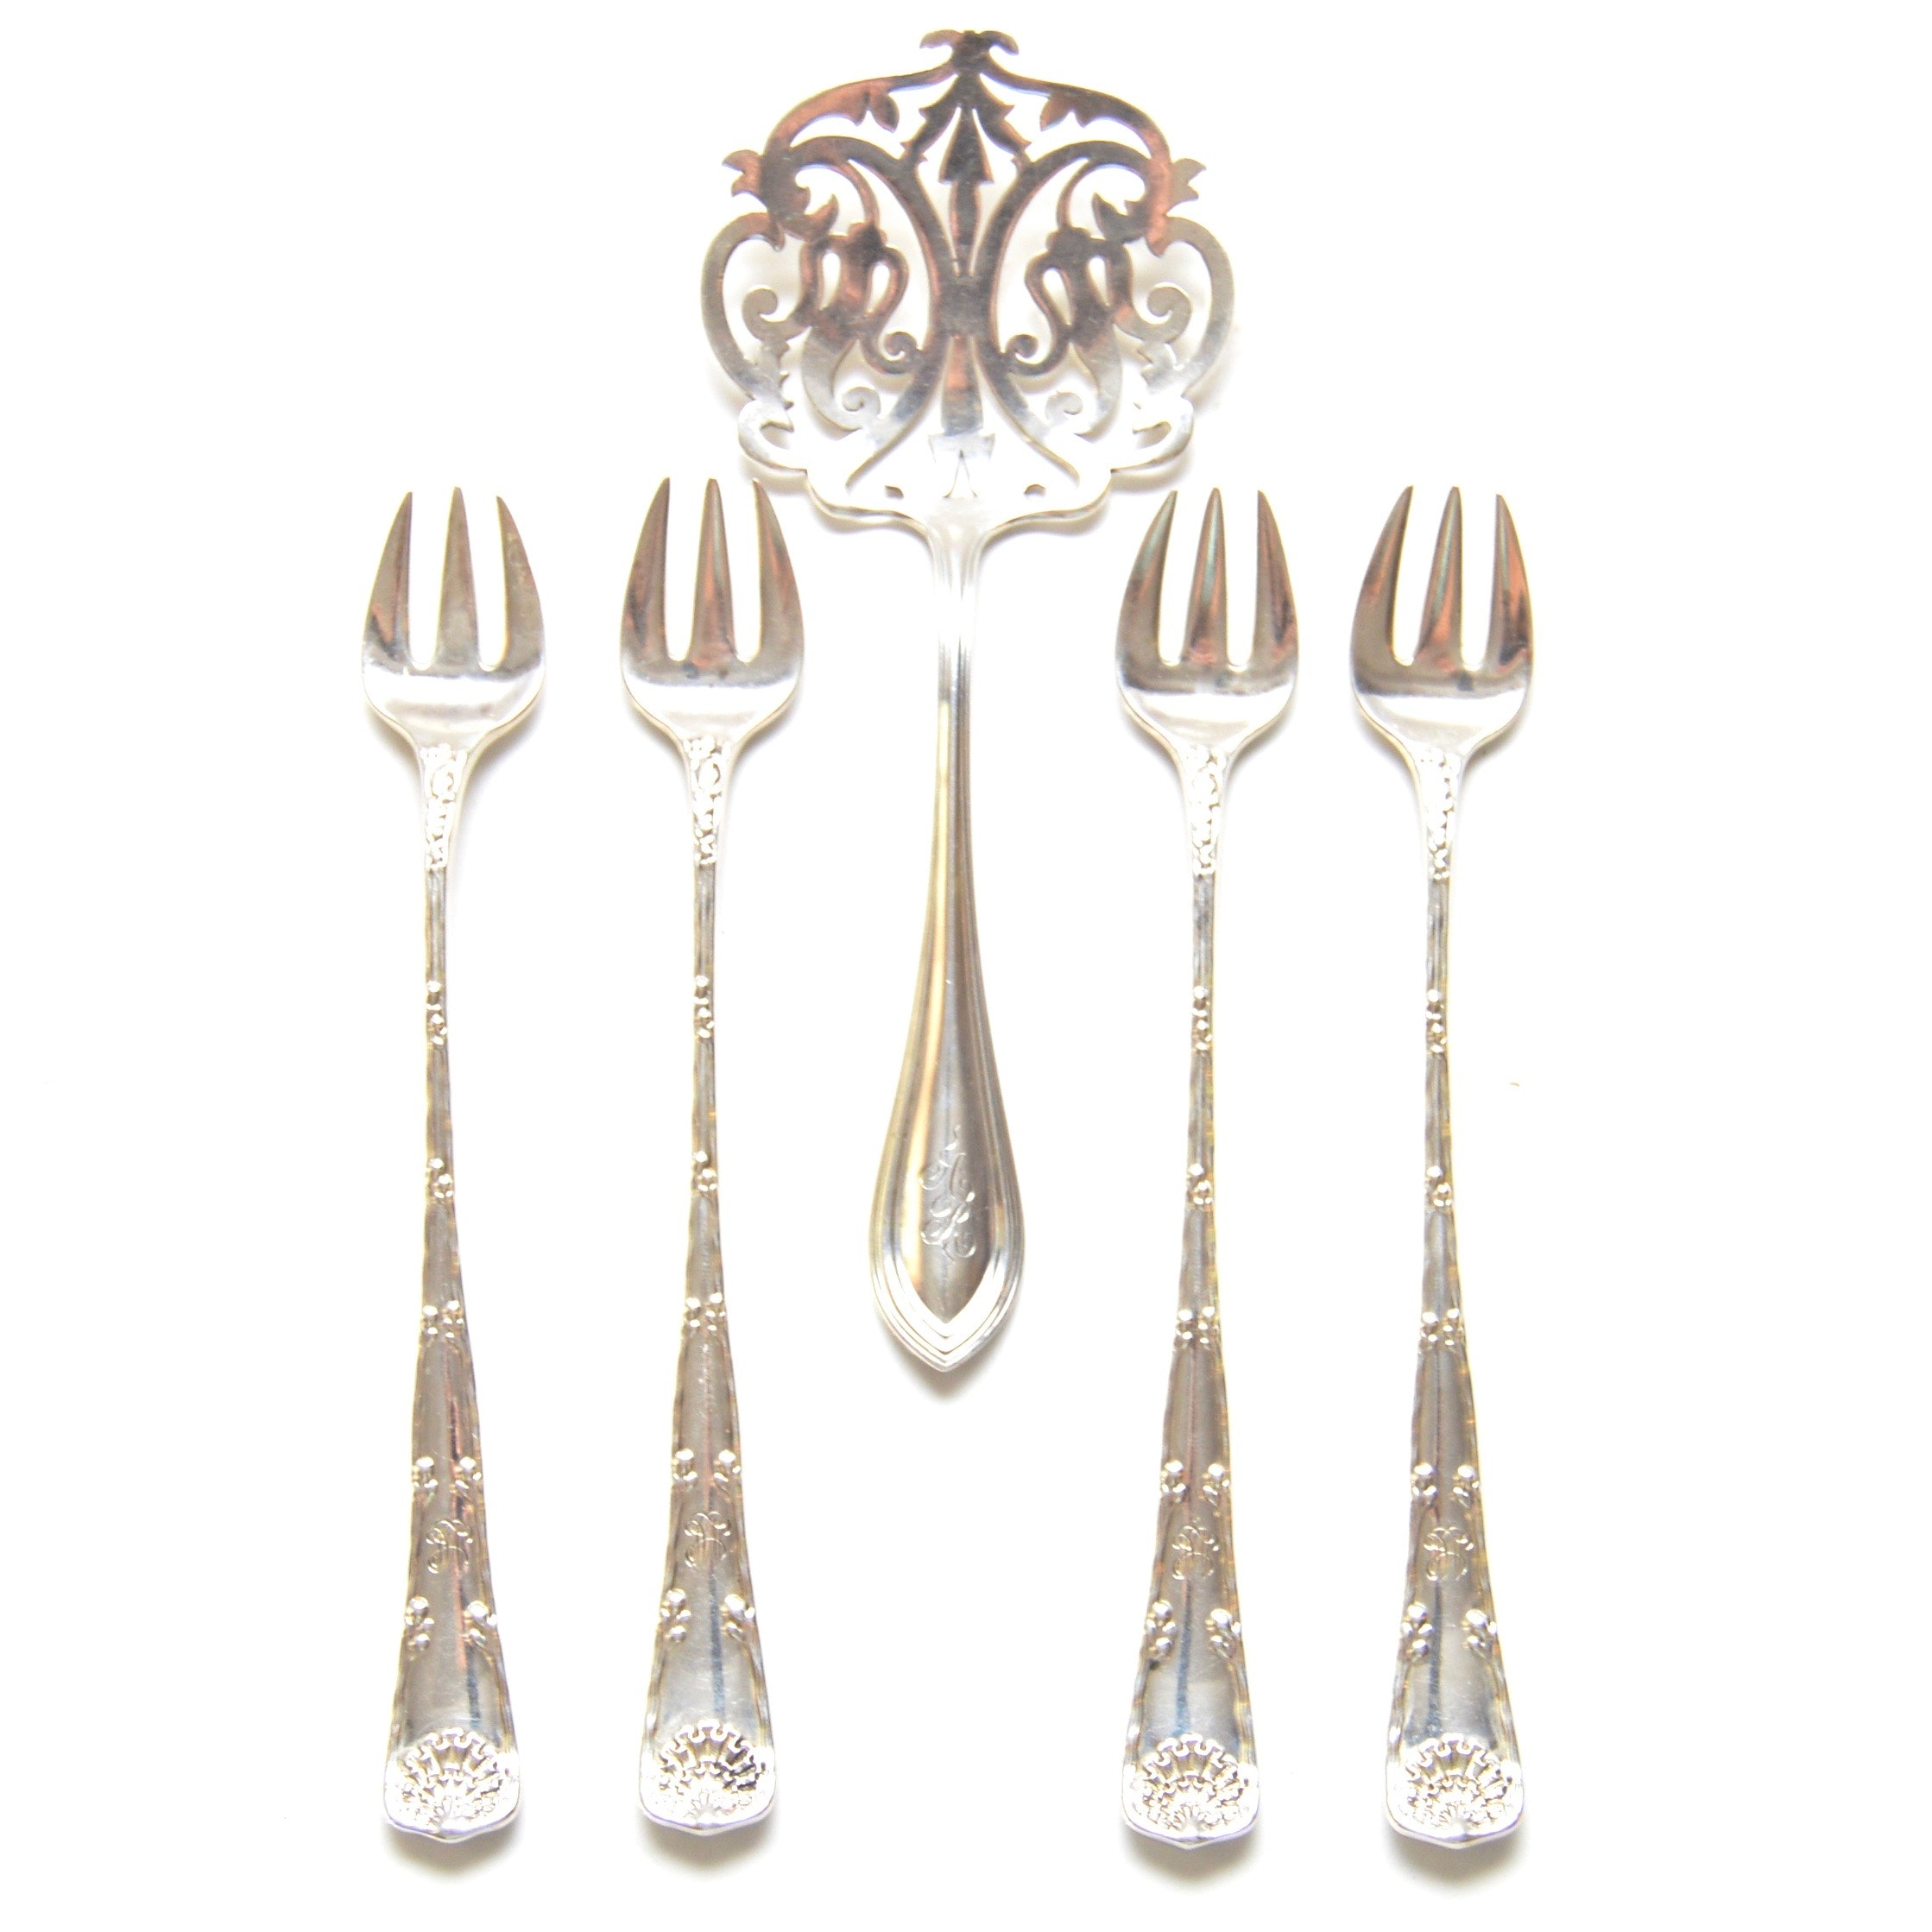 Tiffany & Co. Sterling Cocktail Forks and Watson Pierced Server